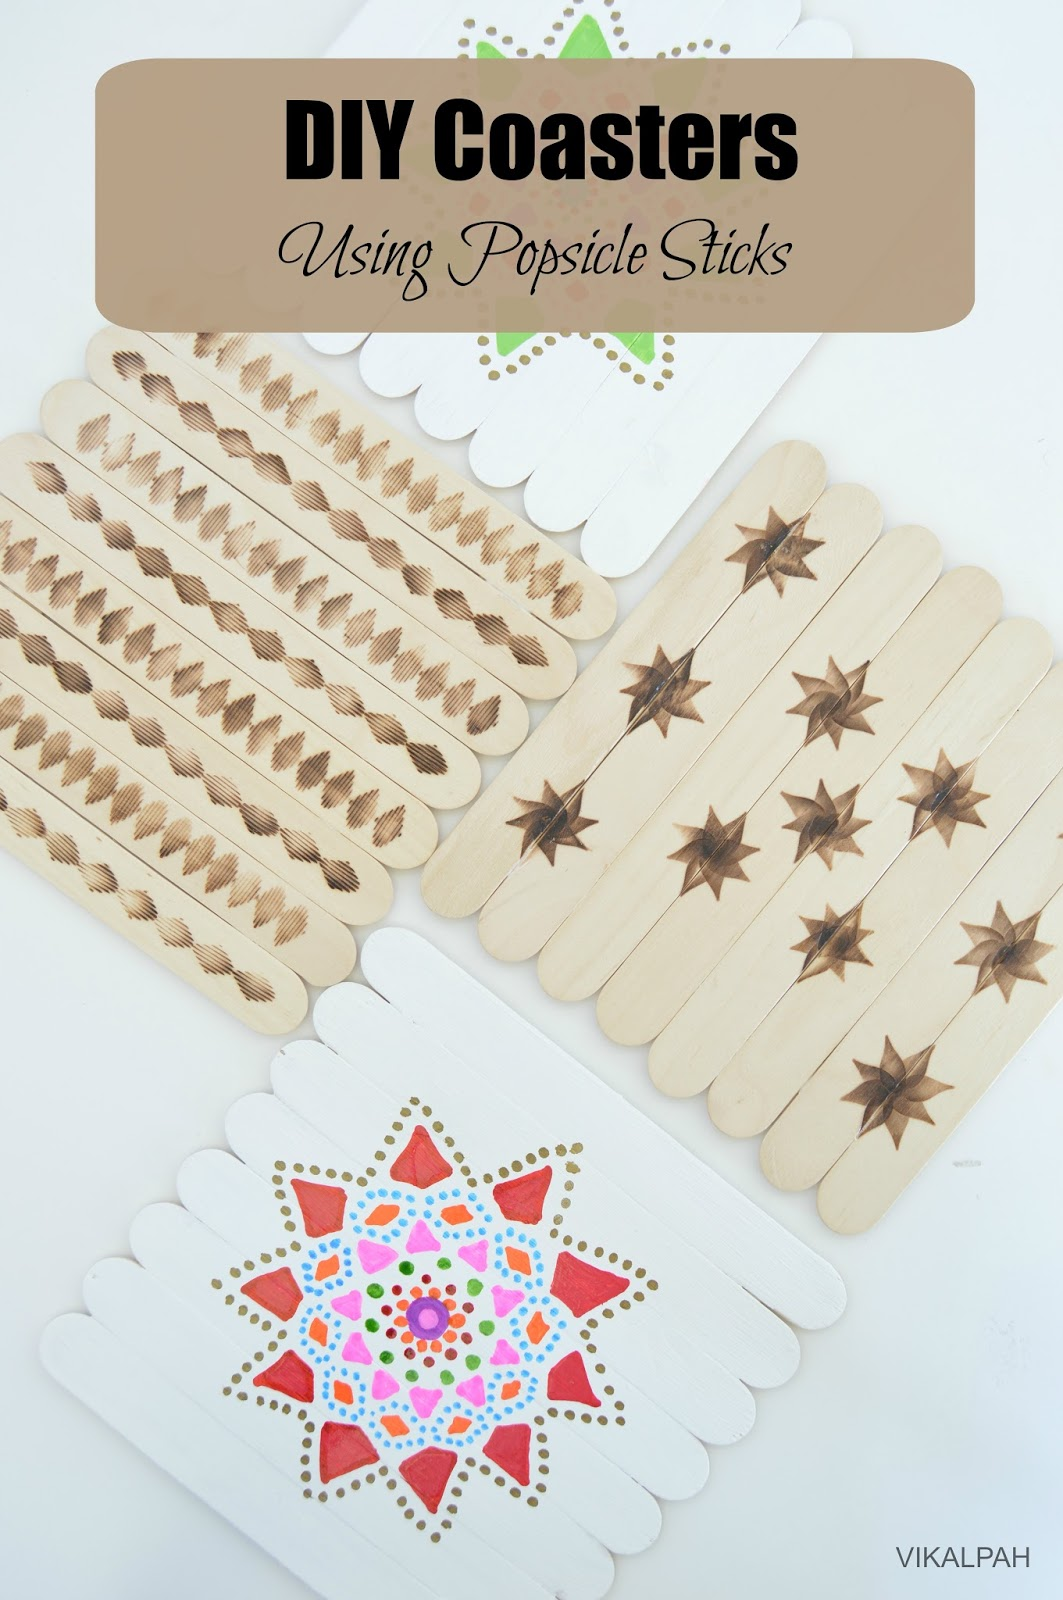 Popsicle Stick Coasters : popsicle, stick, coasters, Vikalpah:, Coasters, Using, Popsicle, Sticks, (Wood, Burning, Painting)